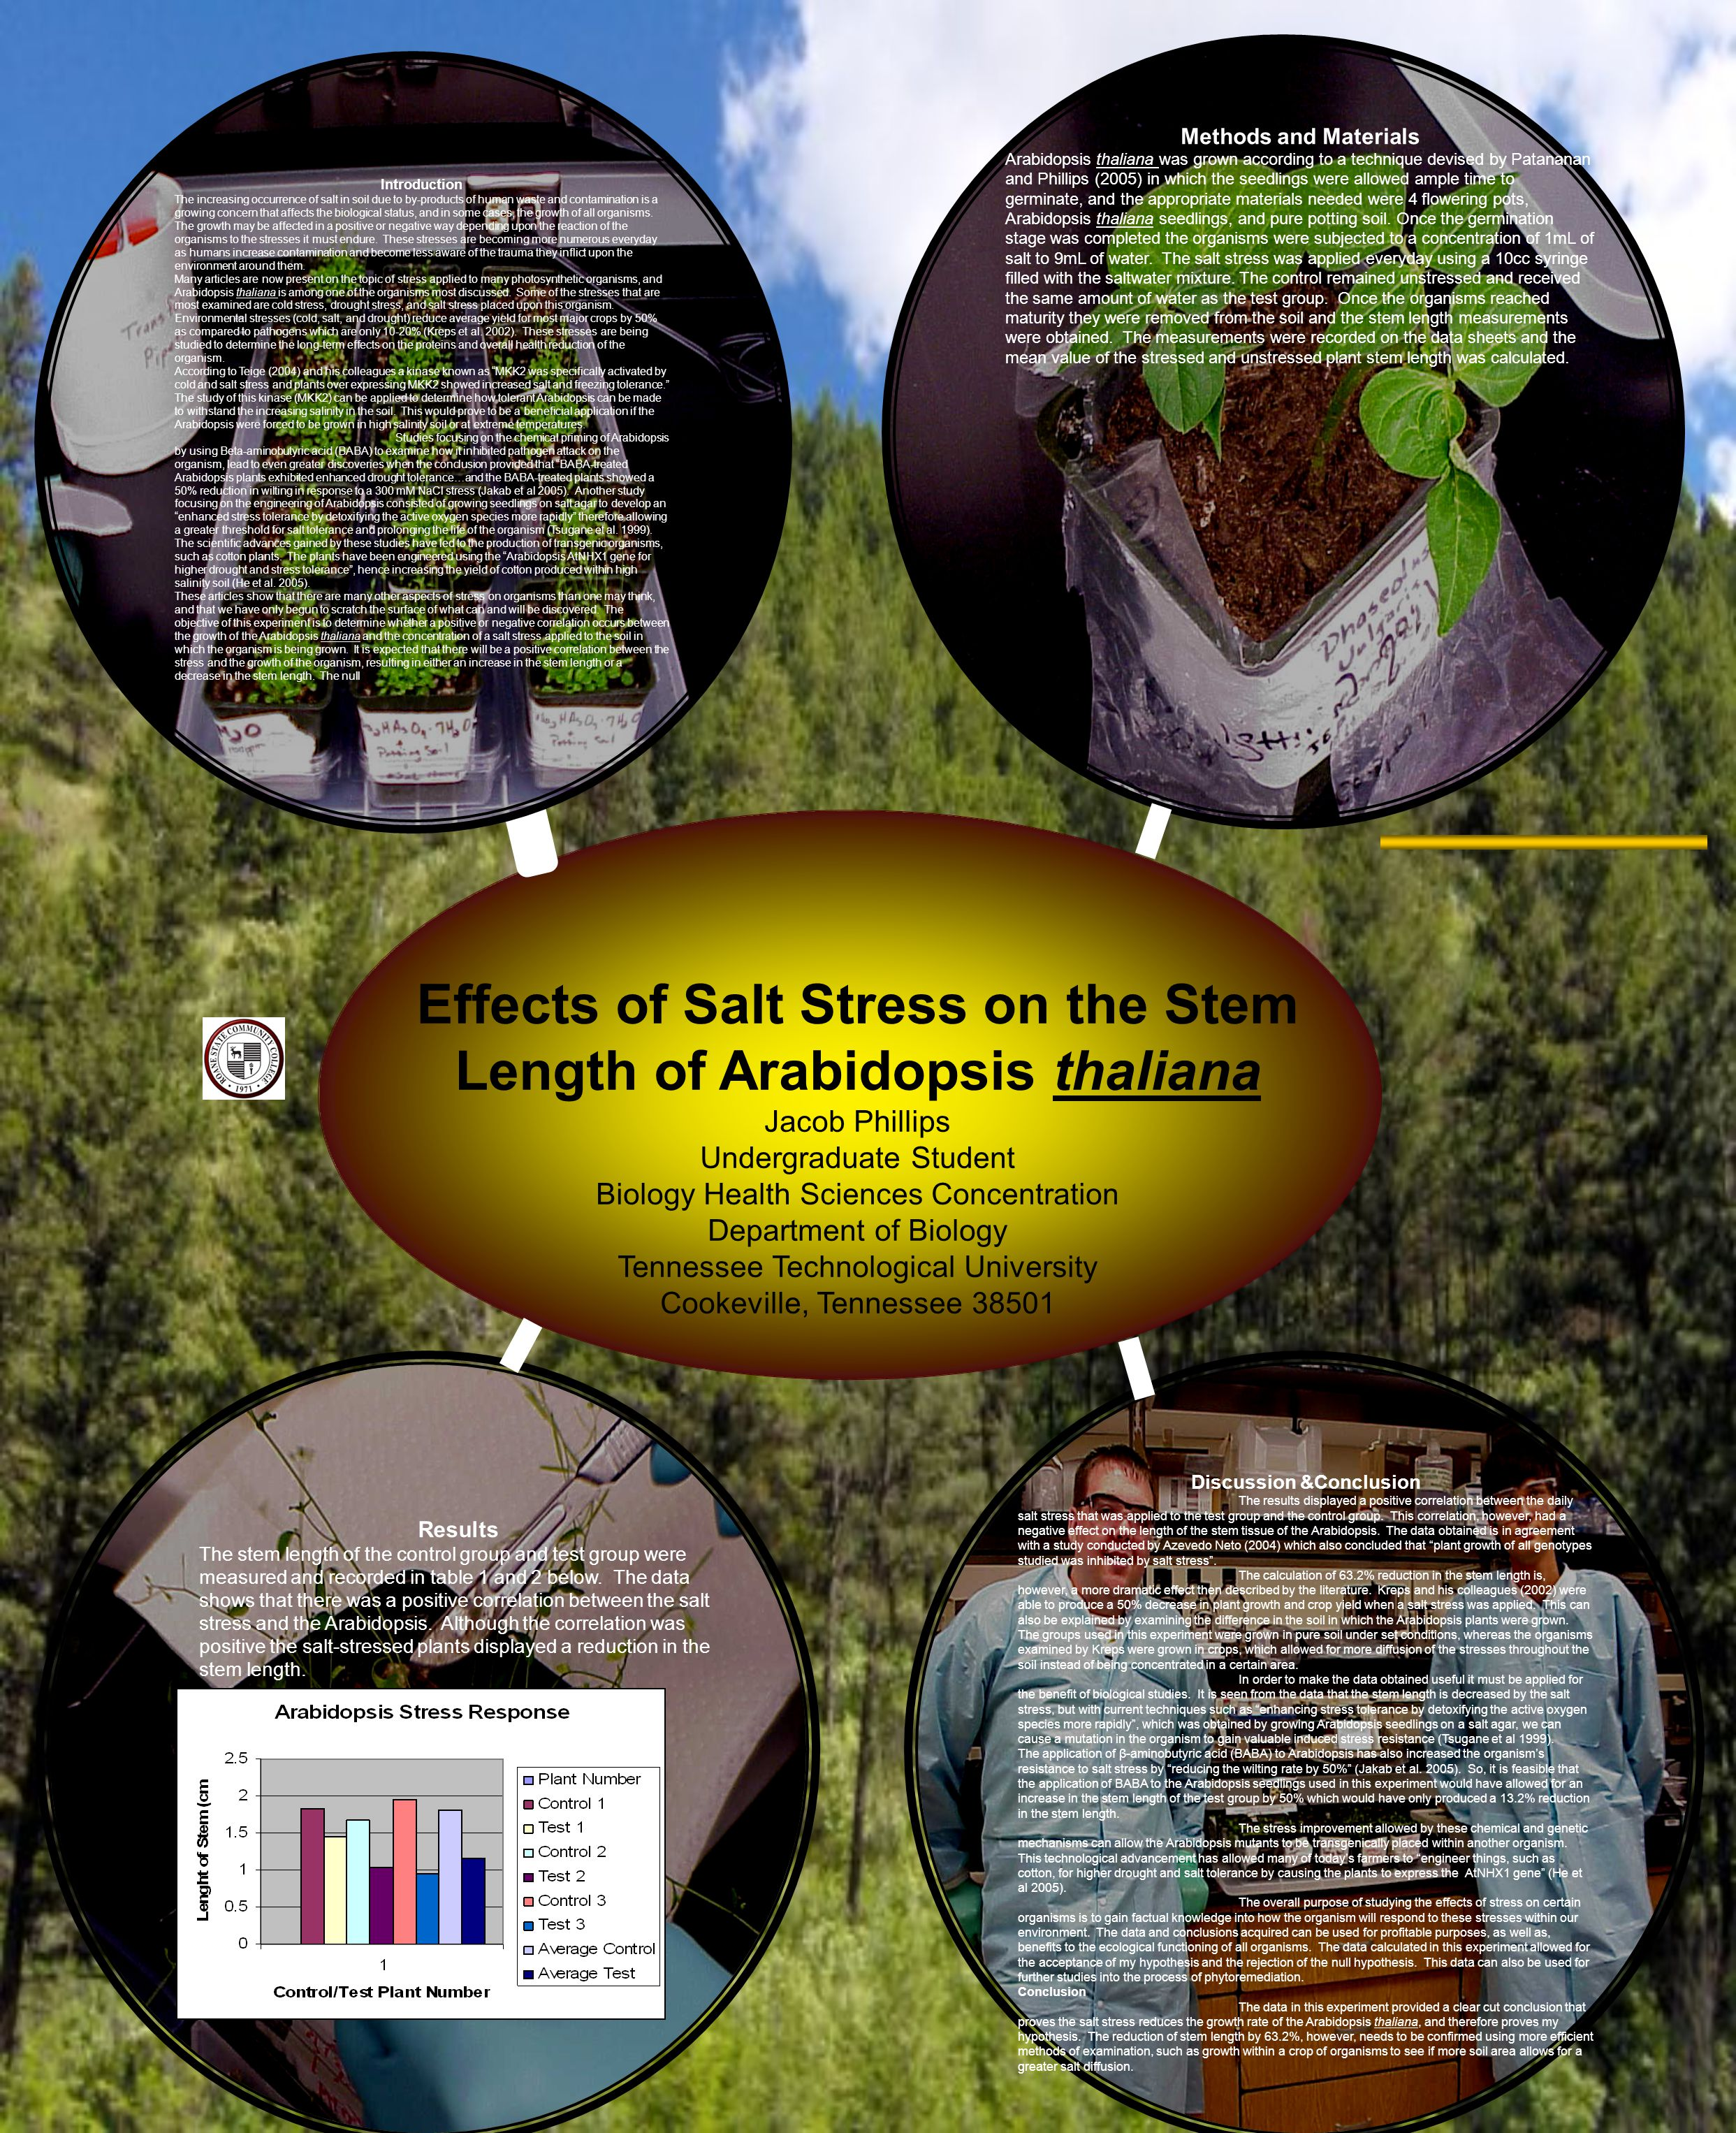 Effects of Salt Stress on the Stem Length of Arabidopsis thaliana Jacob Phillips Undergraduate Student Biology Health Sciences Concentration Department of Biology Tennessee Technological University Cookeville, Tennessee 38501 Introduction The increasing occurrence of salt in soil due to by-products of human waste and contamination is a growing concern that affects the biological status, and in some cases, the growth of all organisms.